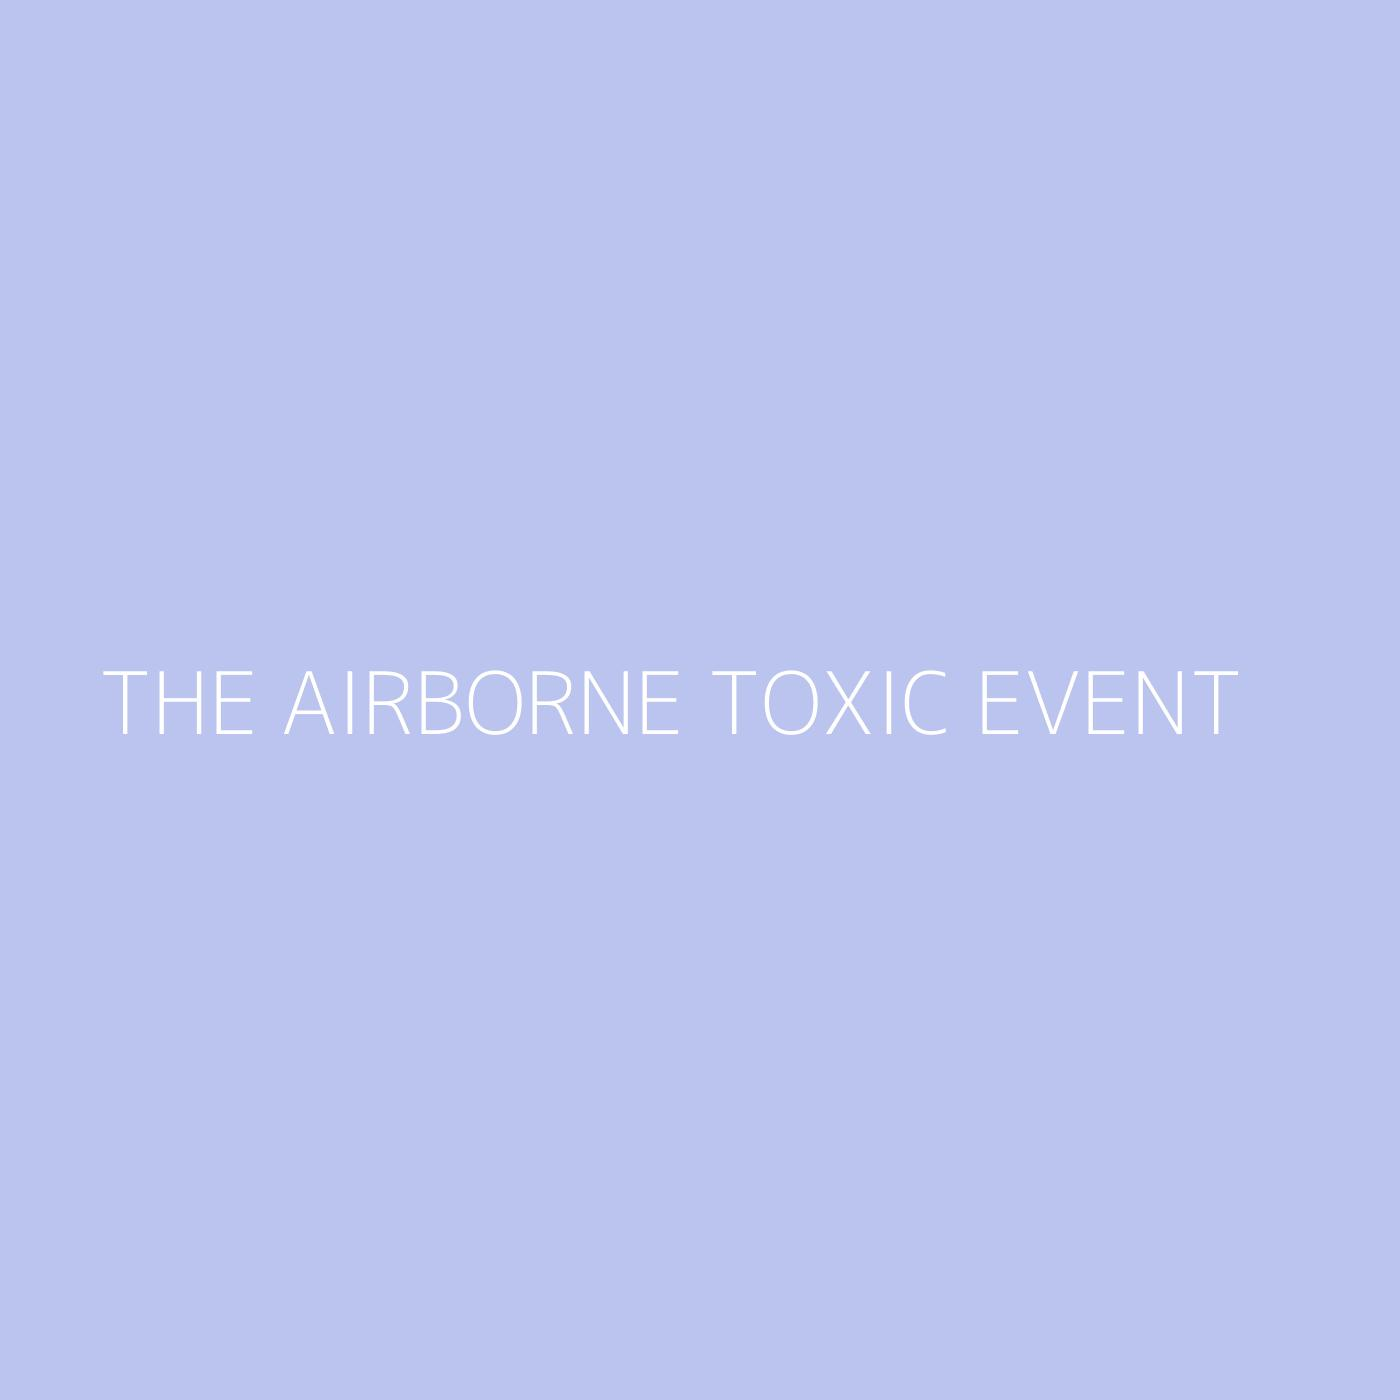 The Airborne Toxic Event Playlist Artwork